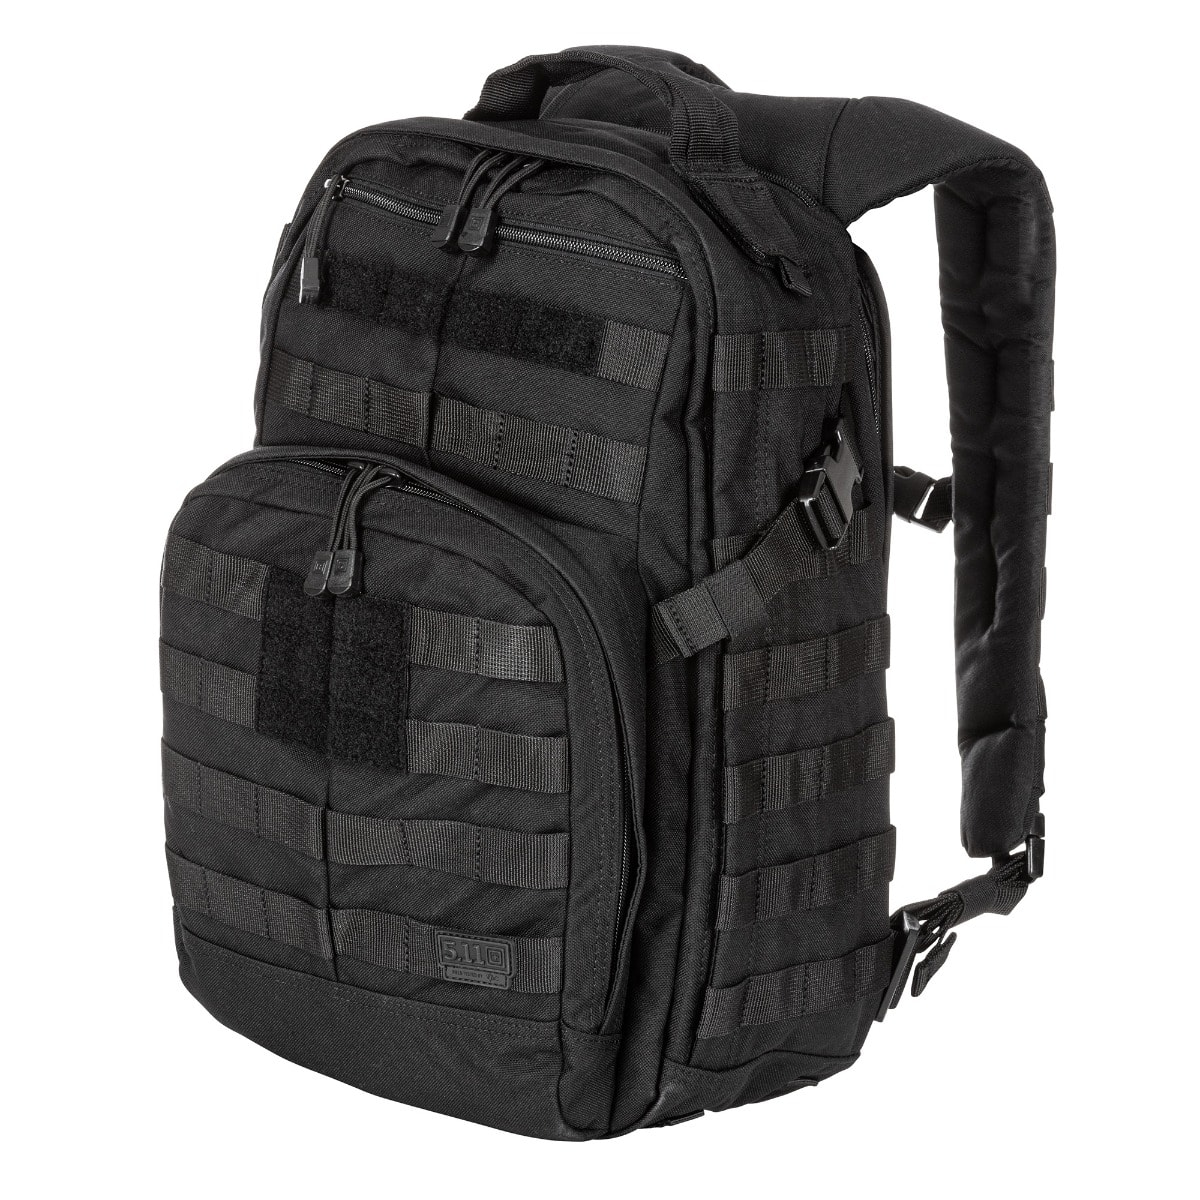 5.11 Tactical 24L Rush12 Backpack (Black or Double Tap)